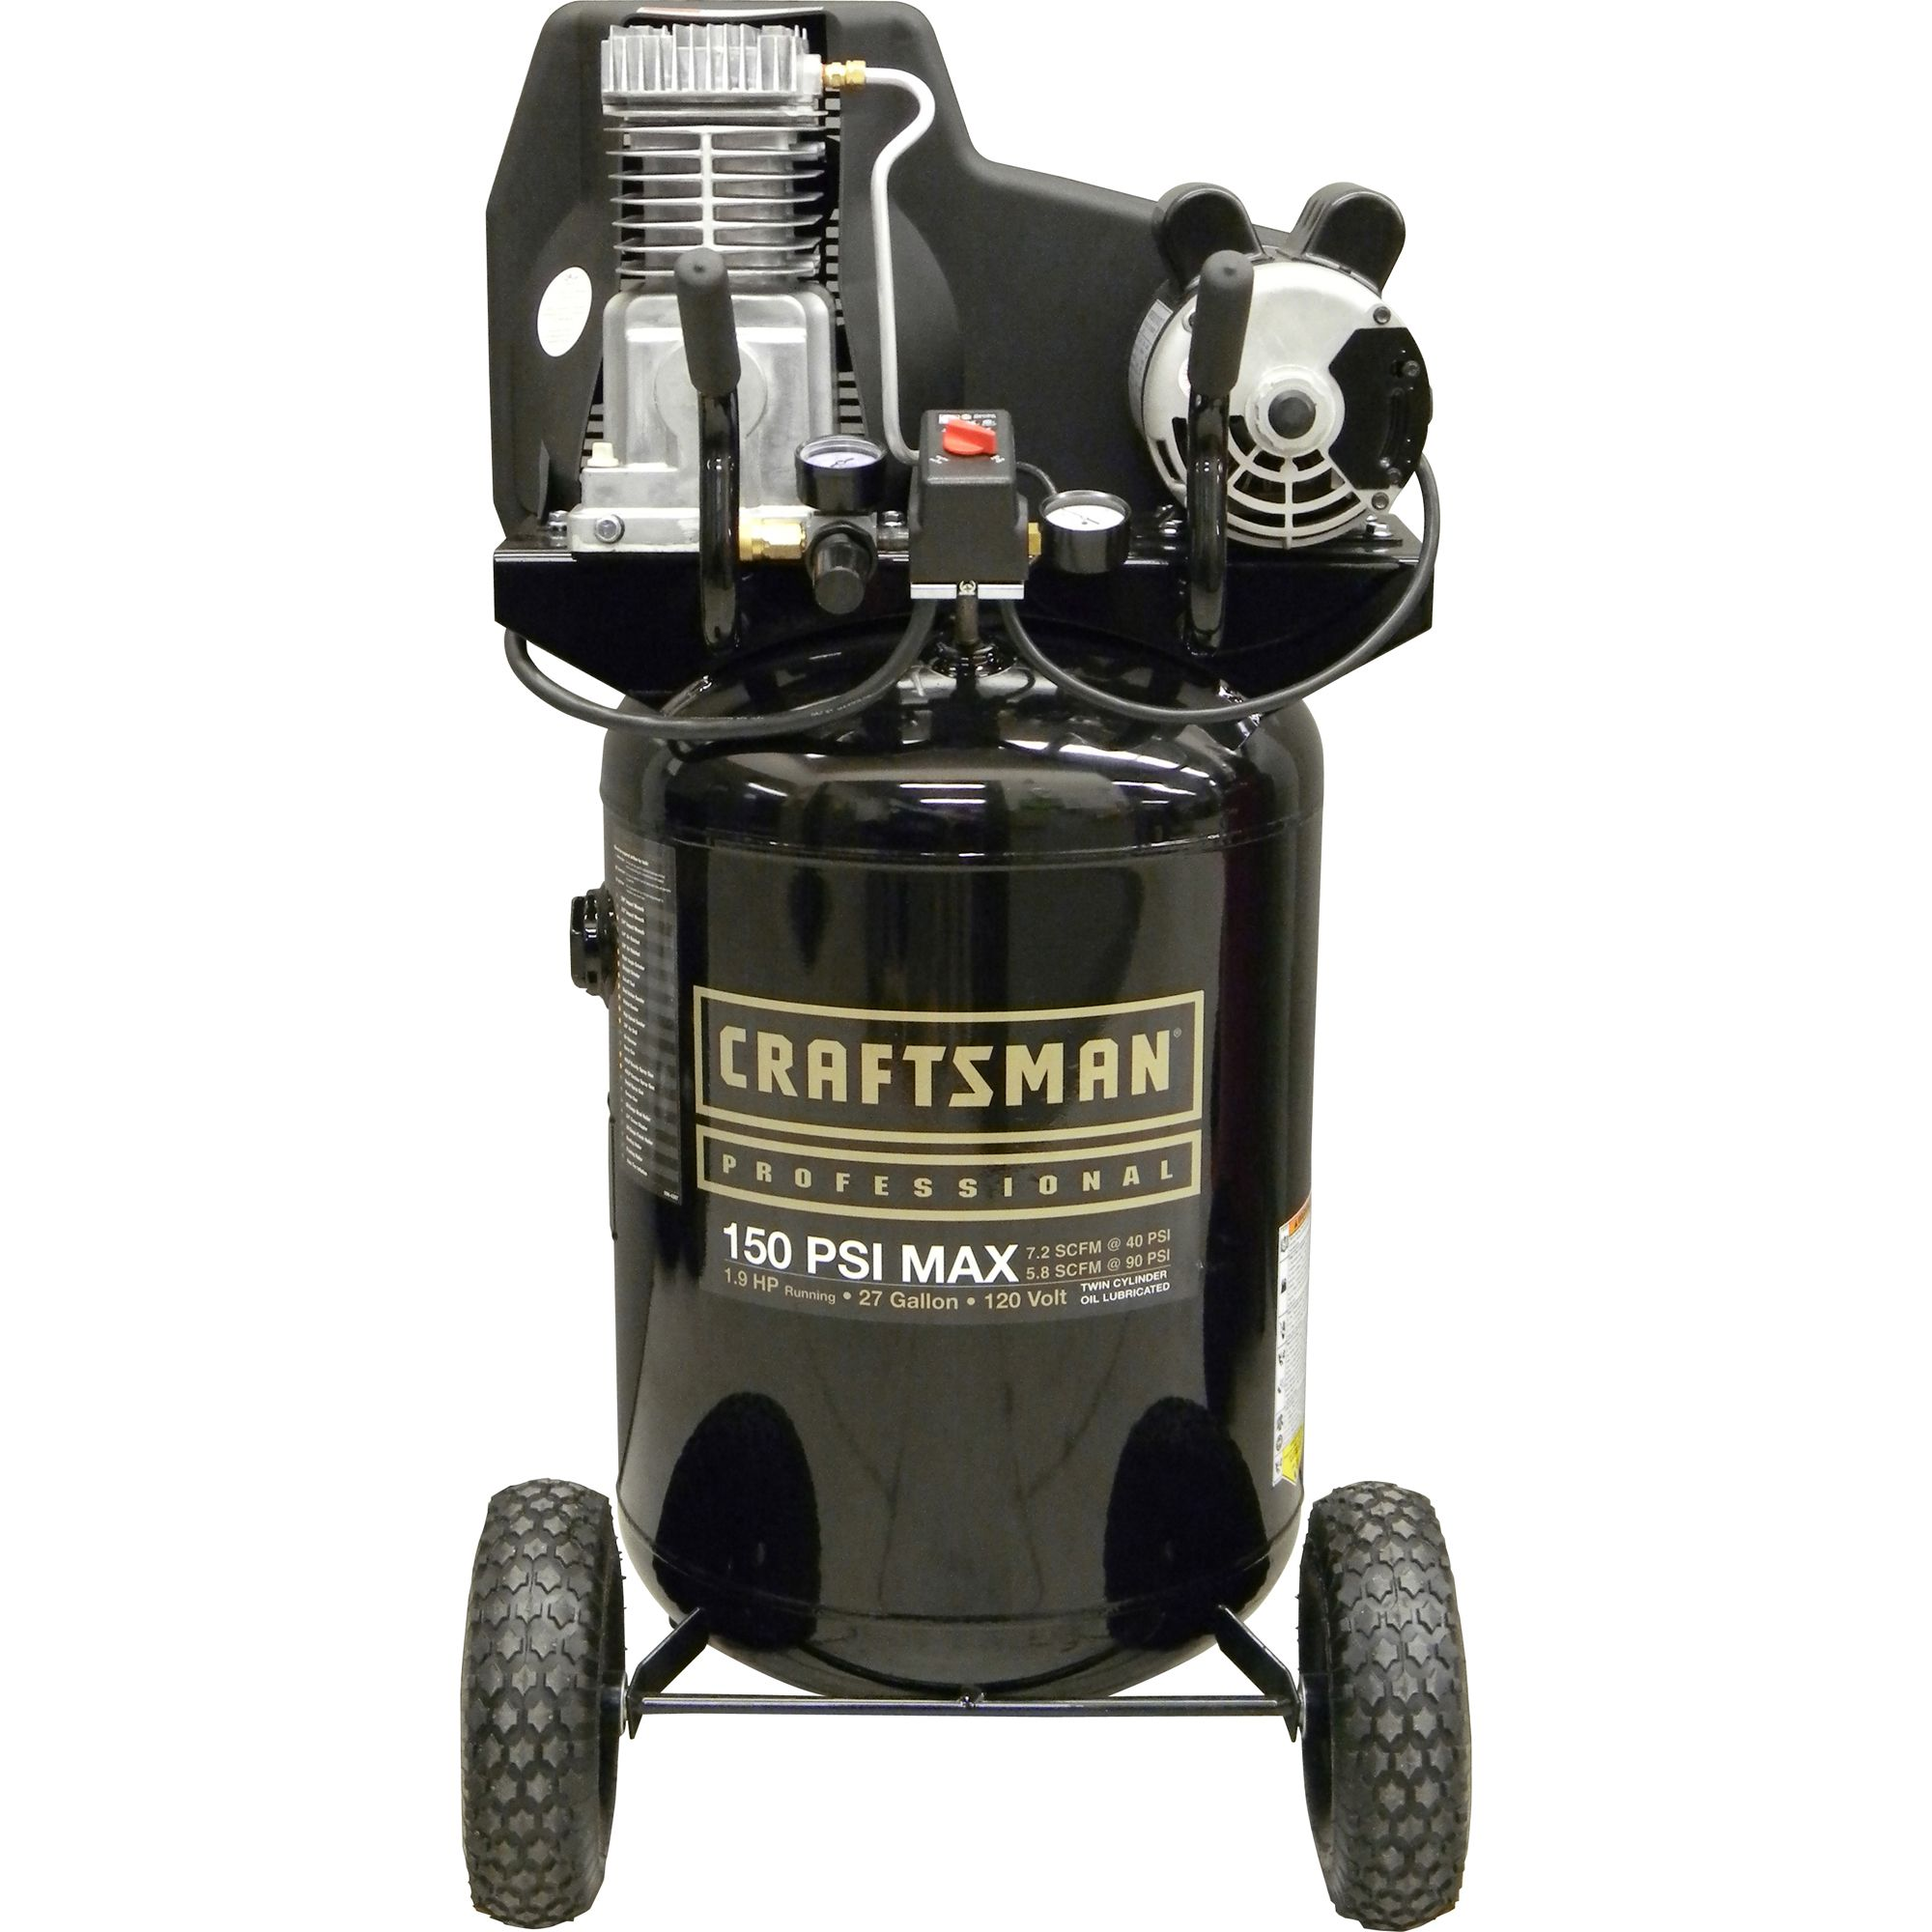 27 Gallon Vertical Portable Air Compressor